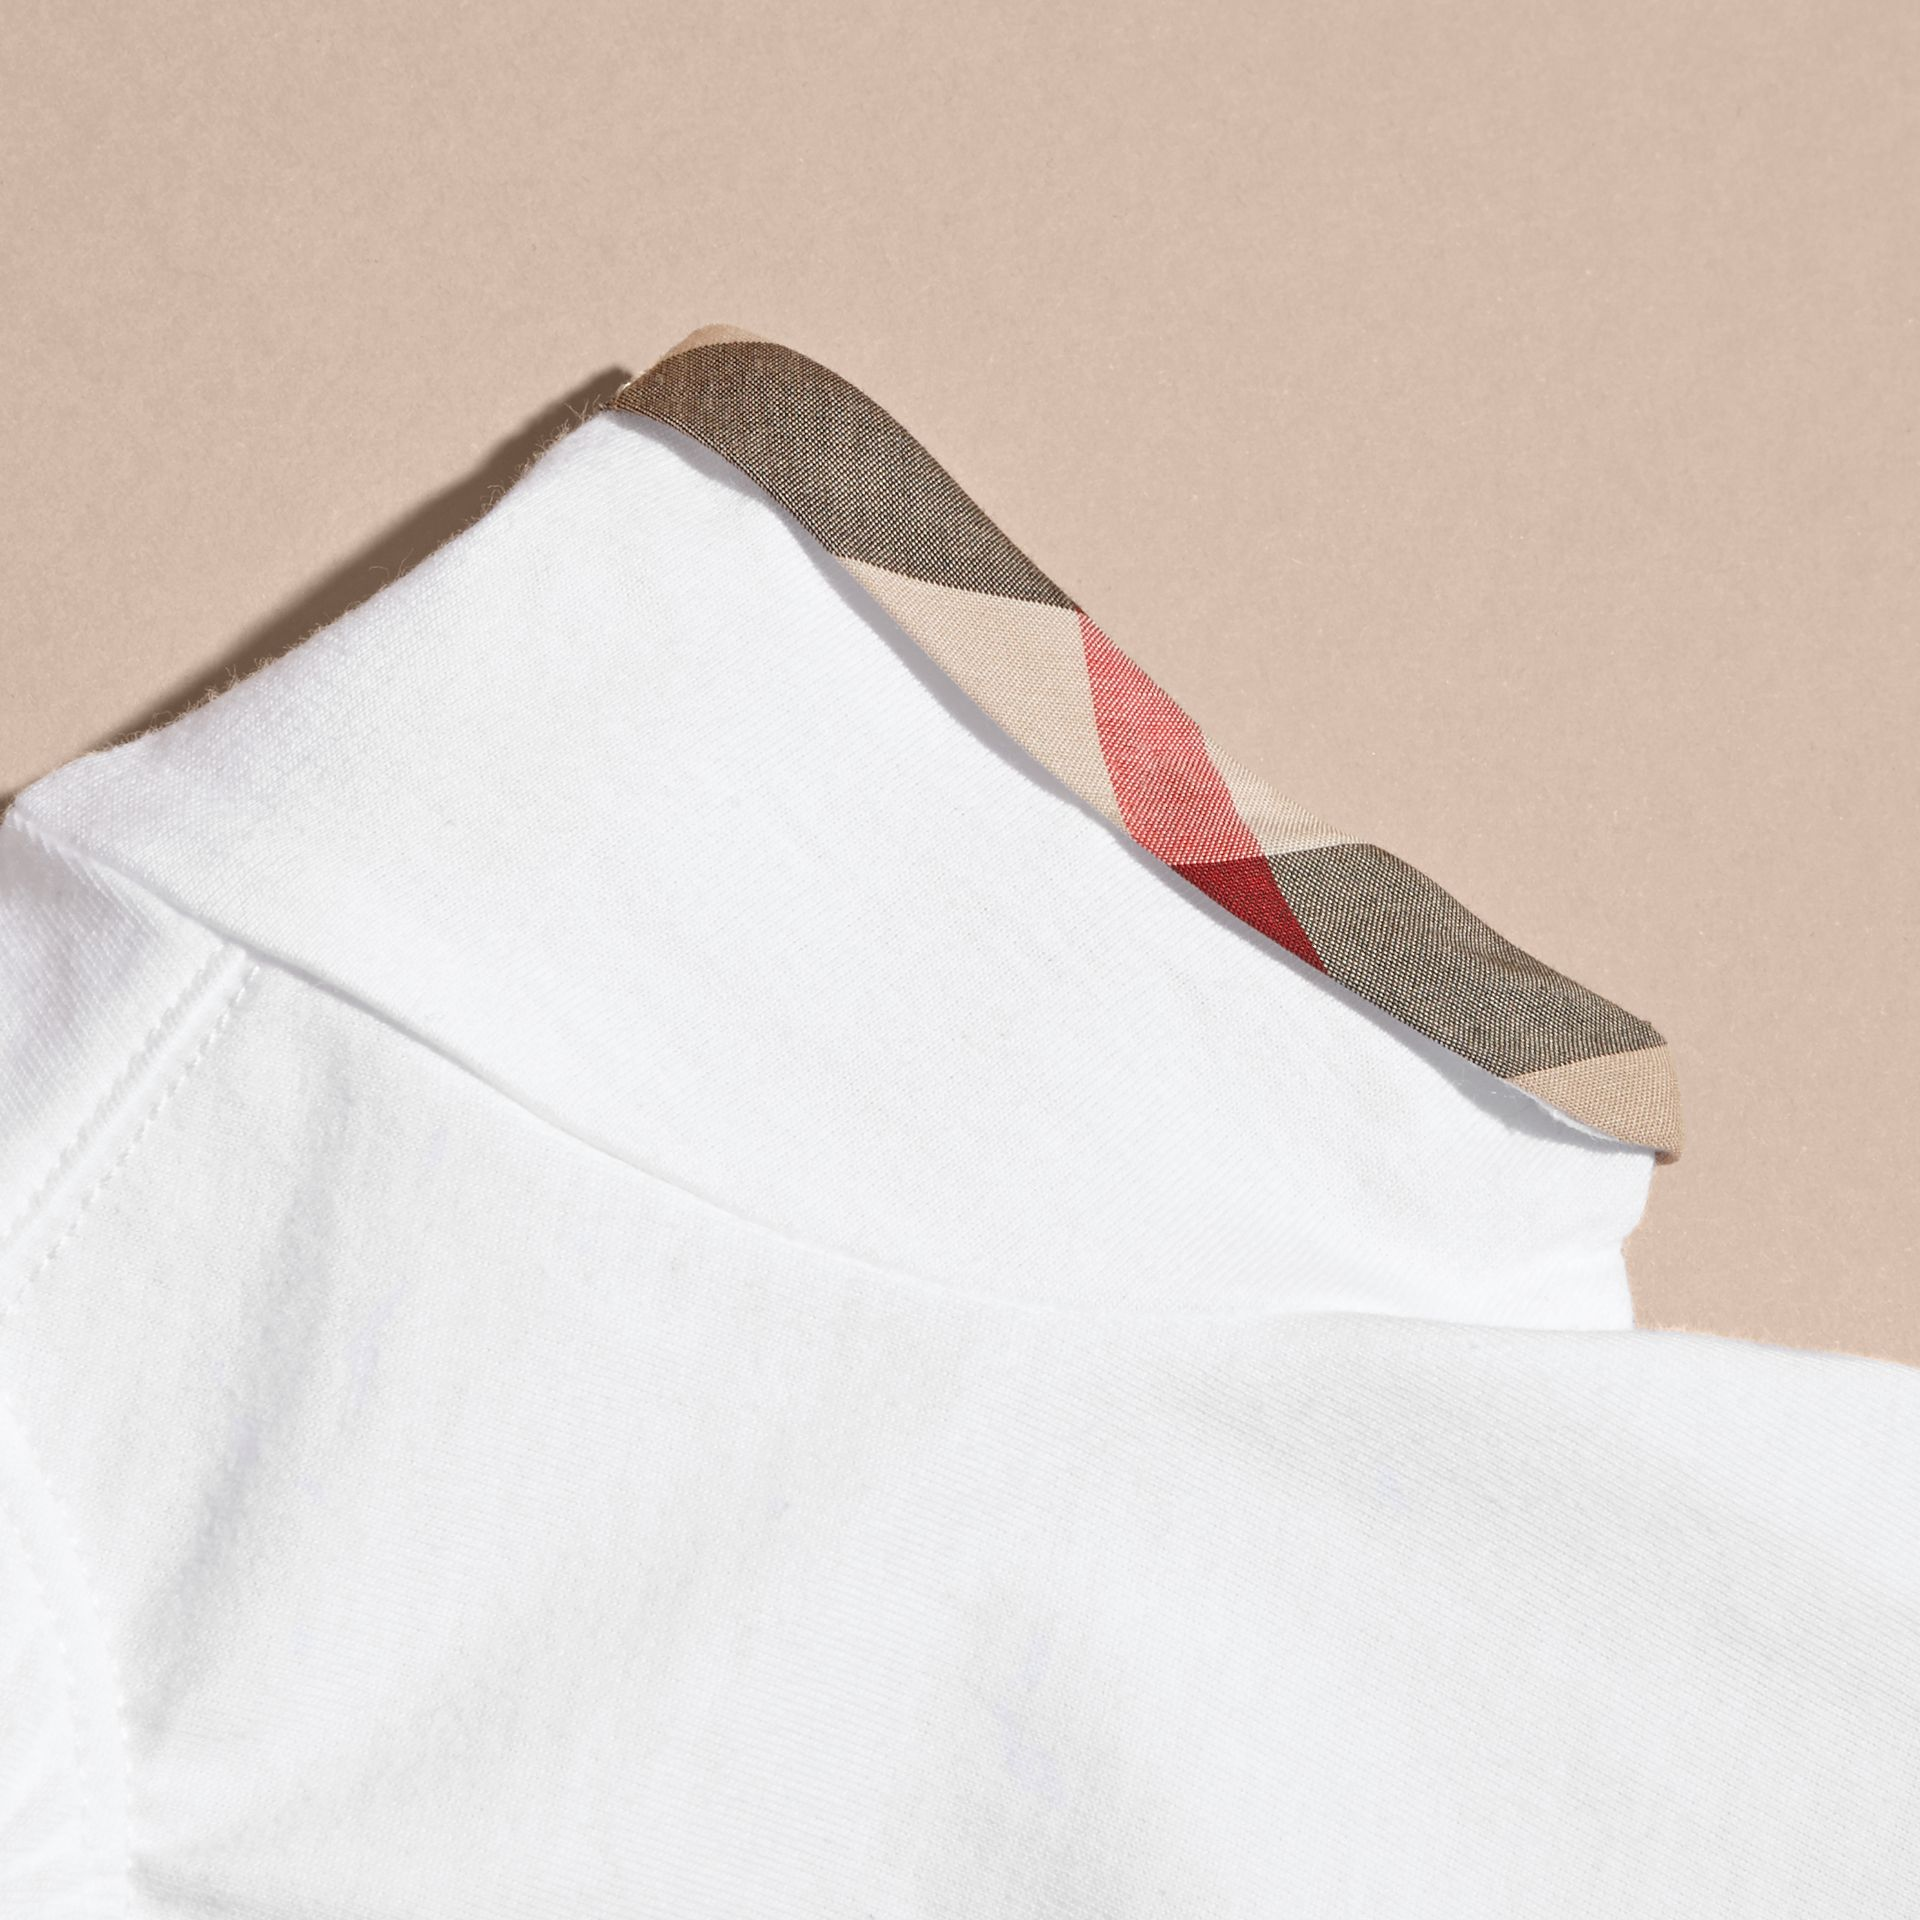 Pleat and Check Detail Cotton T-shirt in White | Burberry Australia - gallery image 2